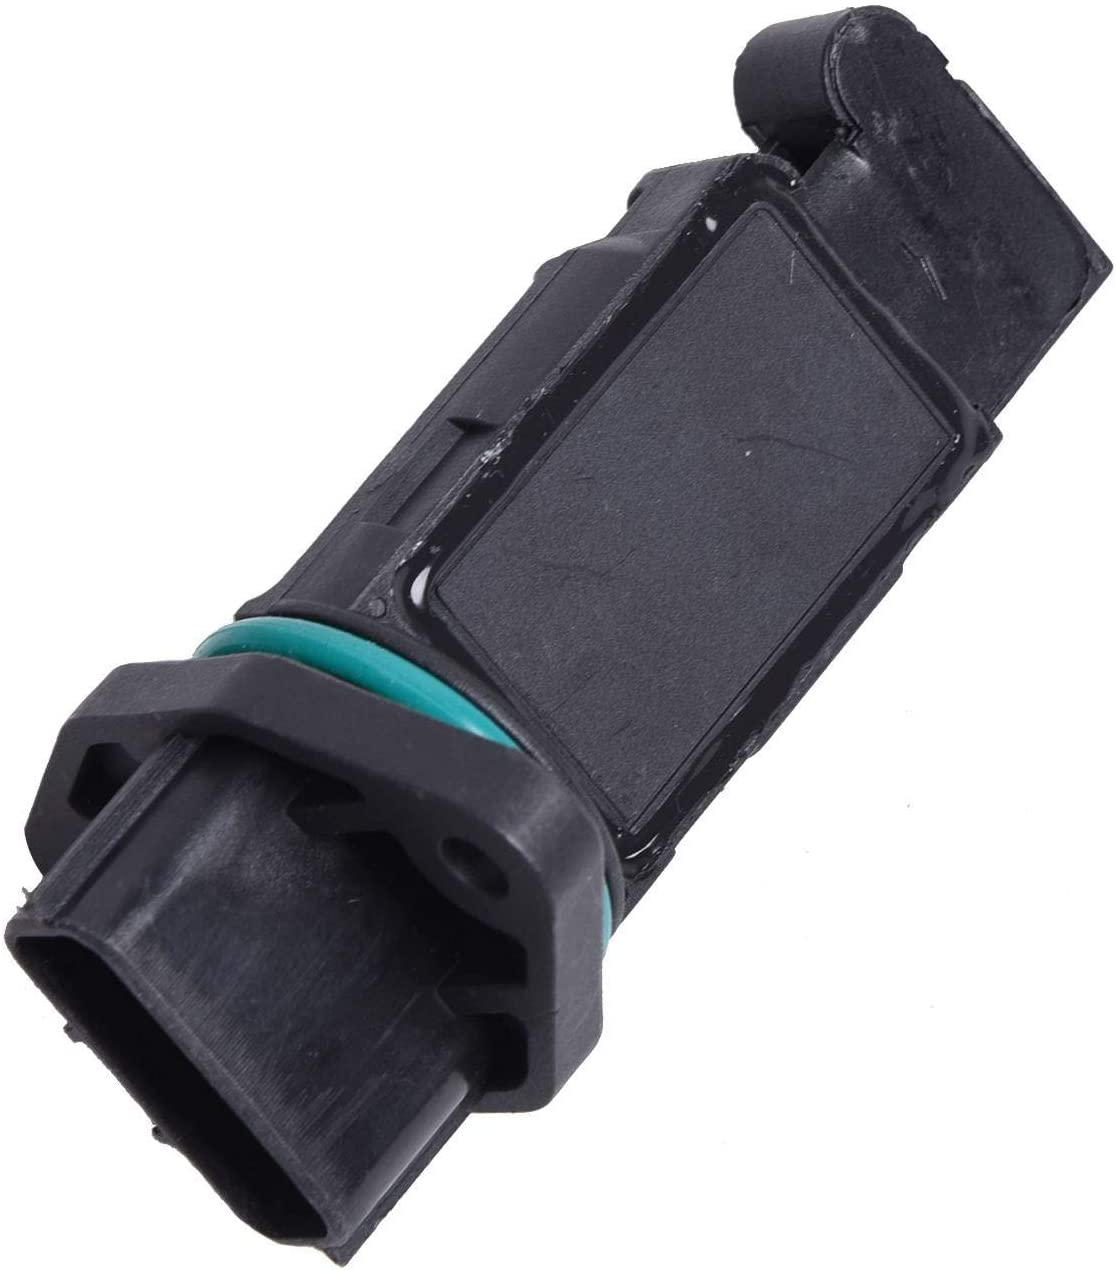 2004-2007 Polaris Sportsman 700 2005-2014 Polaris Sportsman 800 Sportsman 850 Polaris RZR 800 SEEU AGAIN Throttle Position Sensor TPS 1204715 2410342 Replacement for Polaris Ranger 700 800